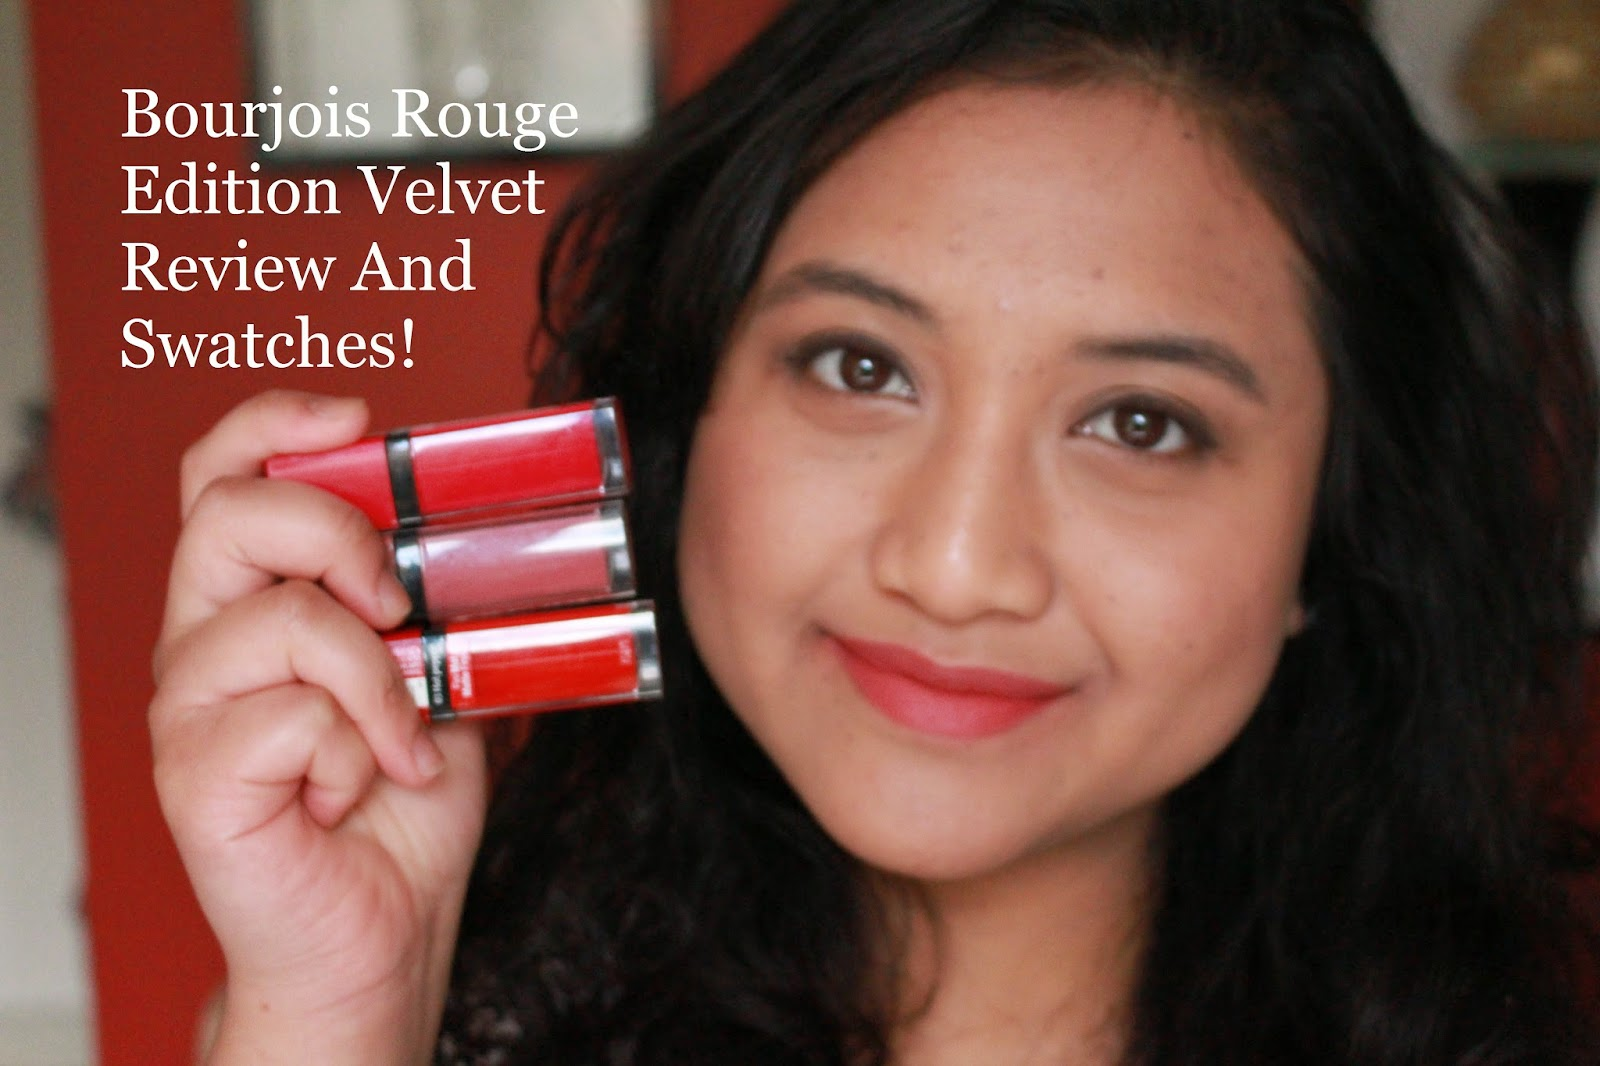 Bourjois Rouge Edition Velvet - Review and Swatches!